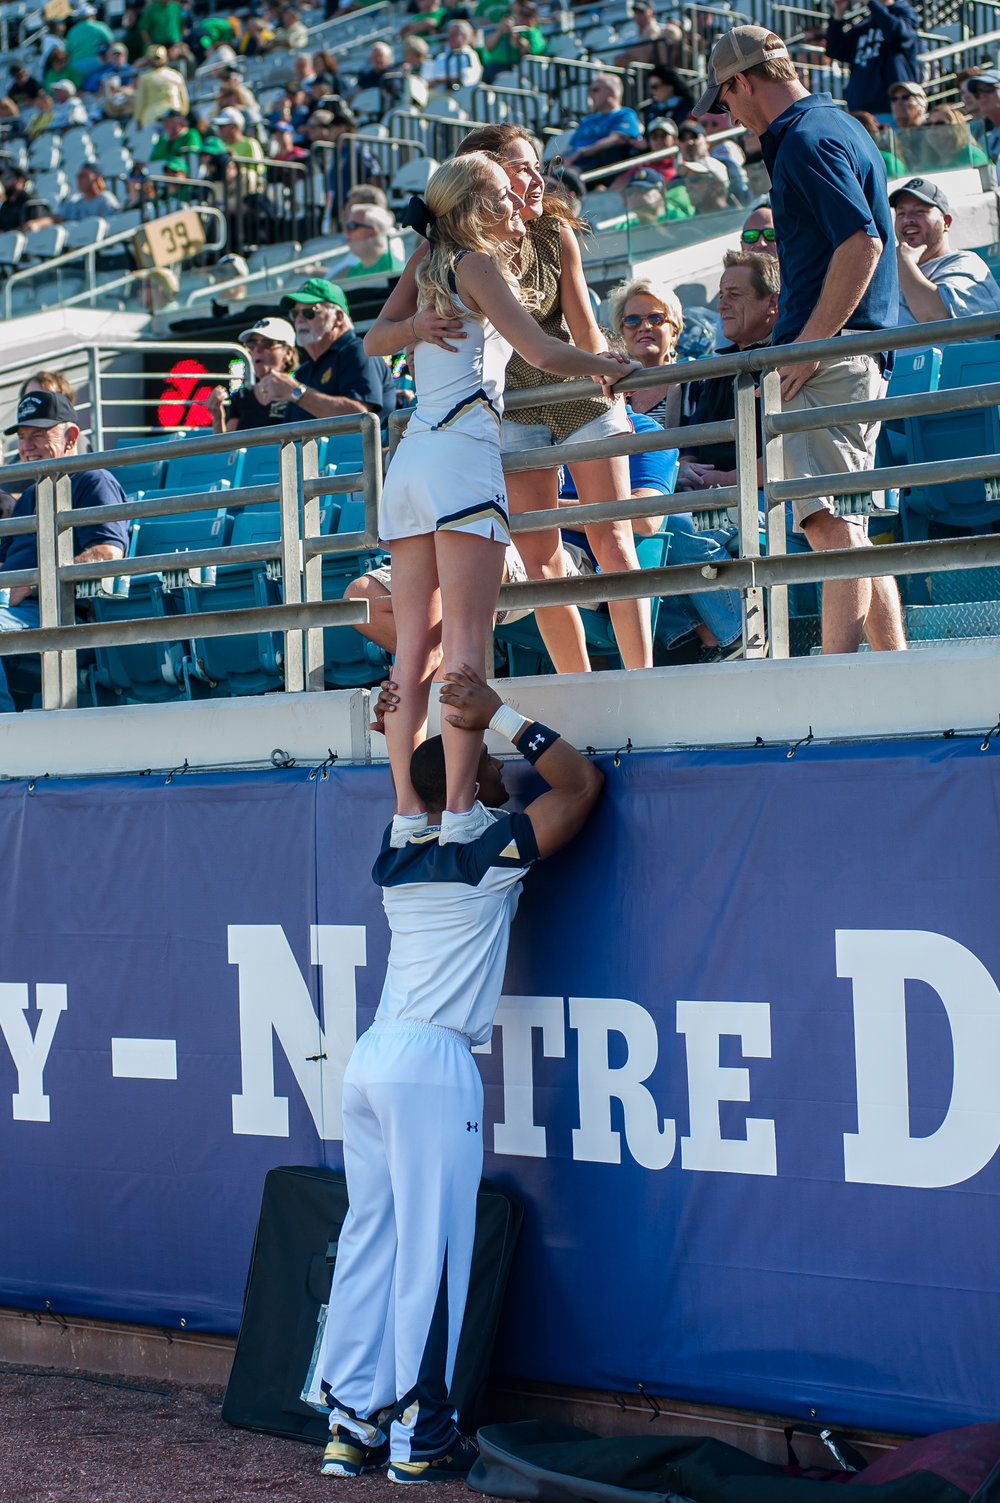 A Naval Academy cheerleader gets a little help from her friend so that she can catch up and take a few selfies with some fans in the stands as the Notre Dame Fightin' Irish took on the Navy Midshipmen at EverBank Field in Jacksonville for a soon-to-be annual rivalry football game played in the River City.